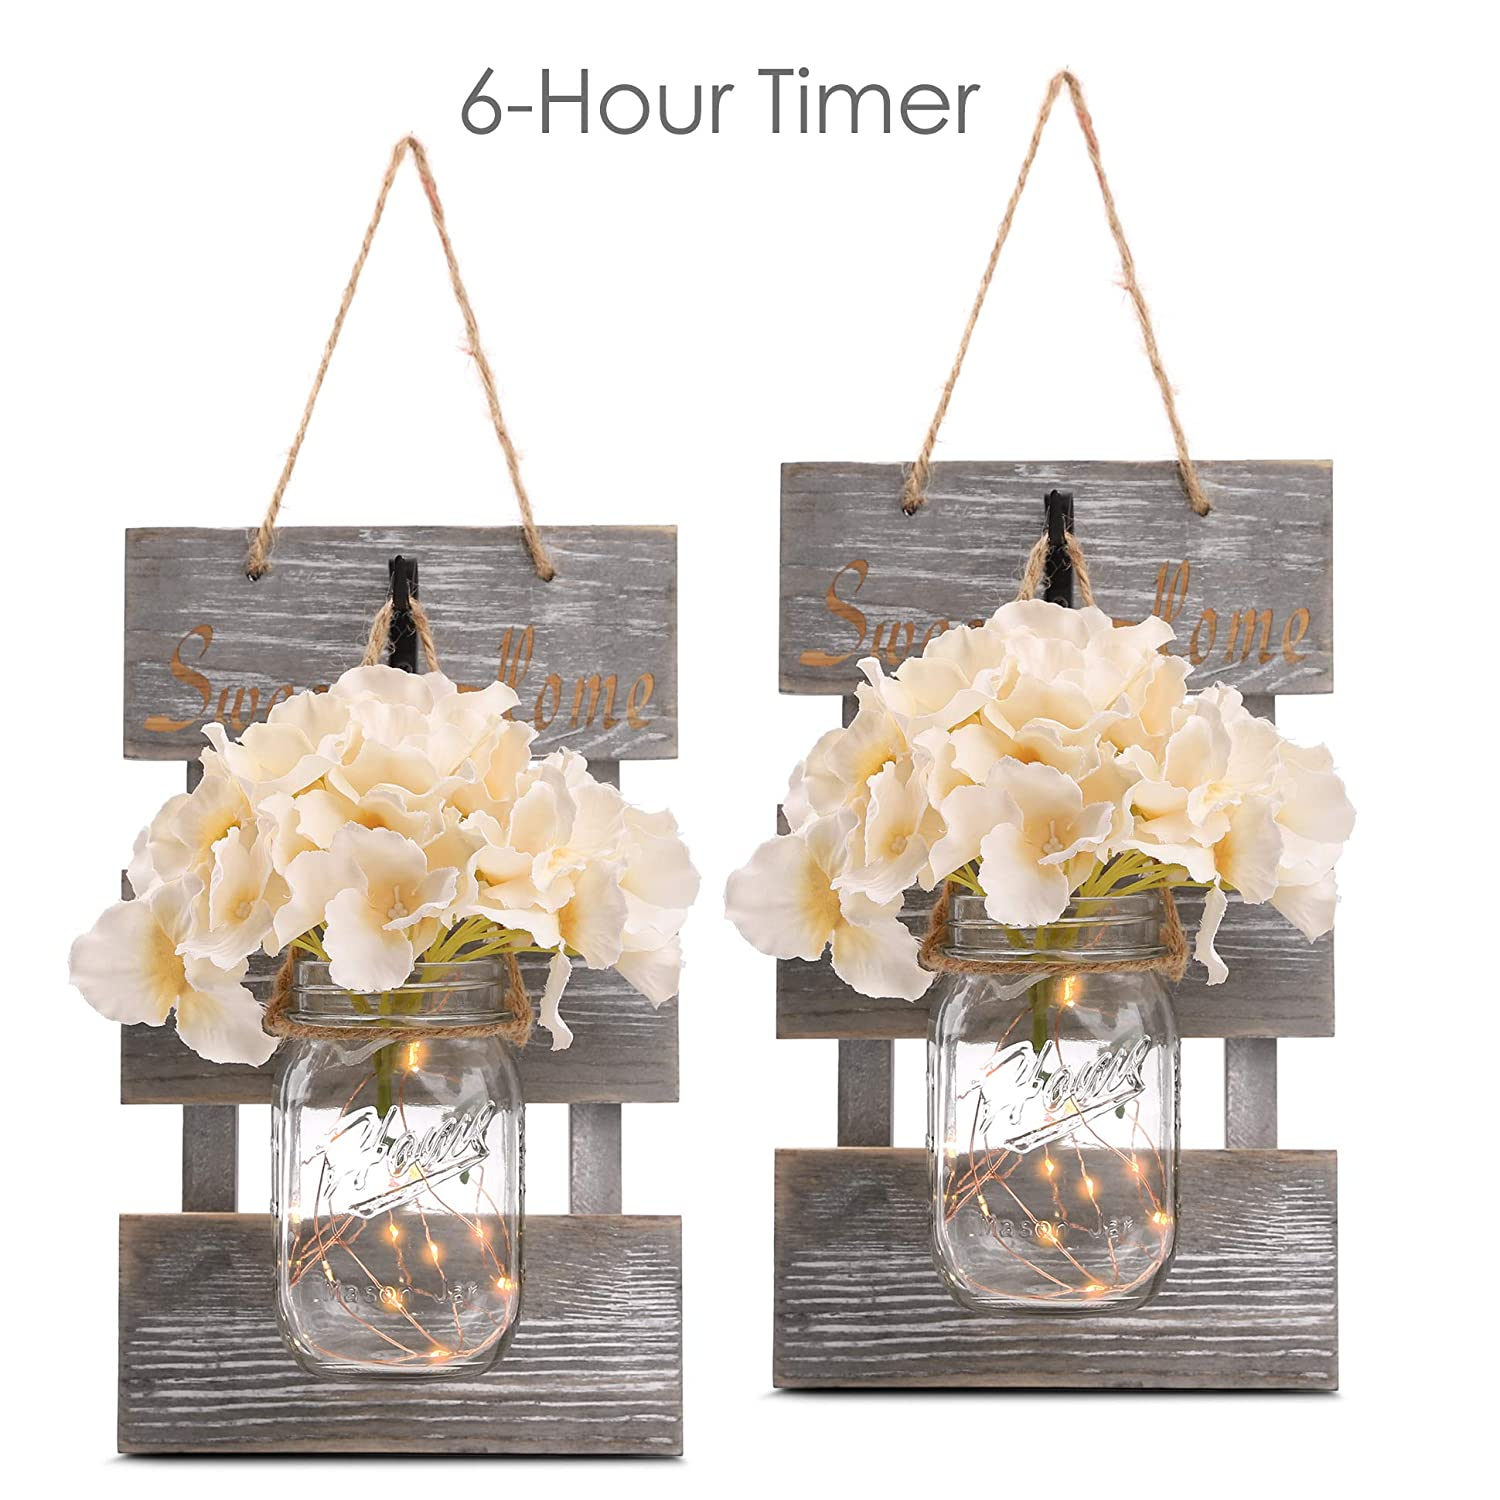 HOMKO Mason Jar Wall Decor with 6-Hour Timer LED Lights and Flowers - Rustic Home Decor (Set of 2)